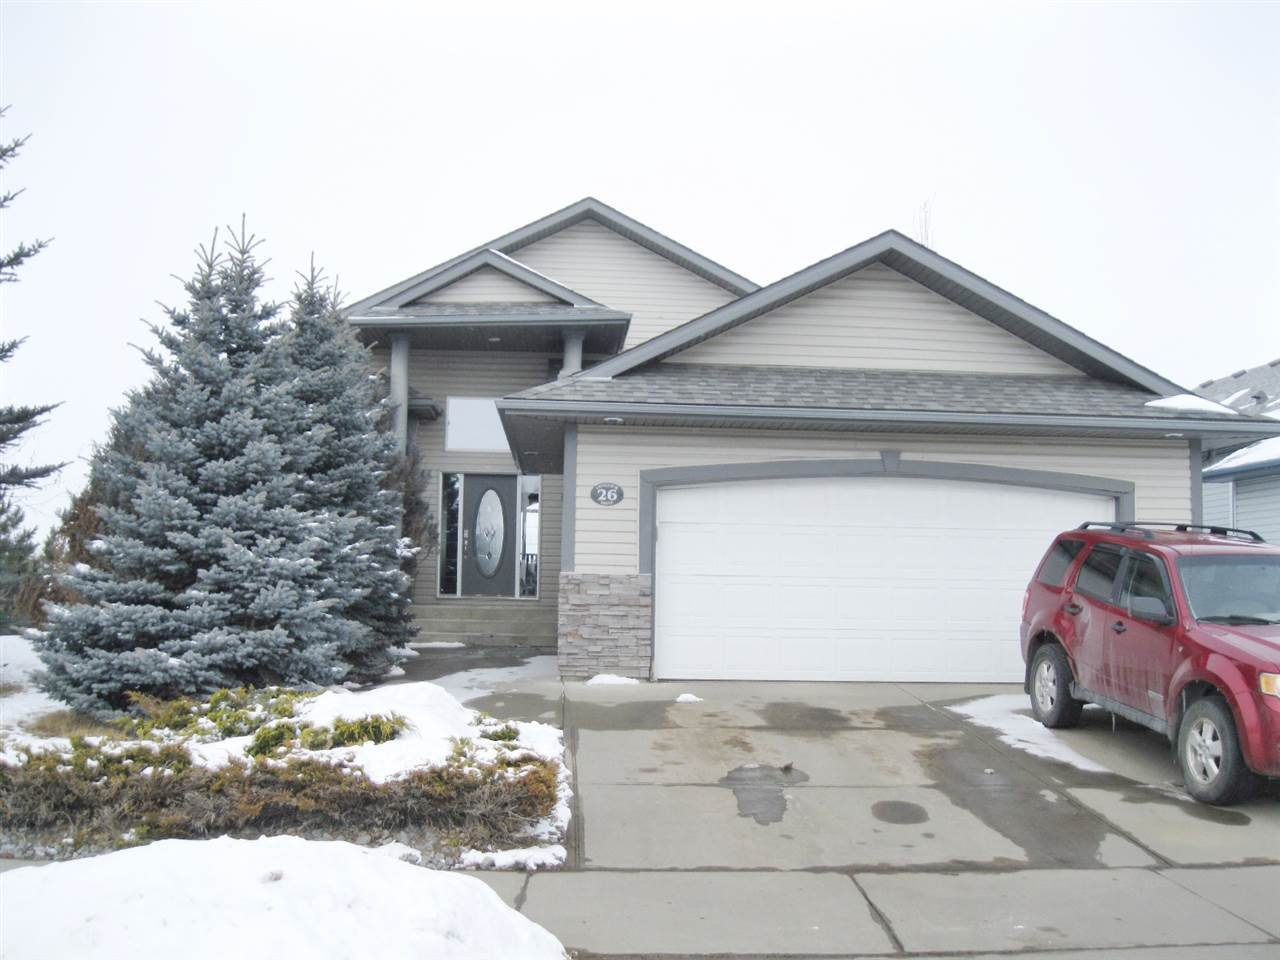 Main Photo: 26 LONGVIEW Drive: Spruce Grove House for sale : MLS®# E4193394